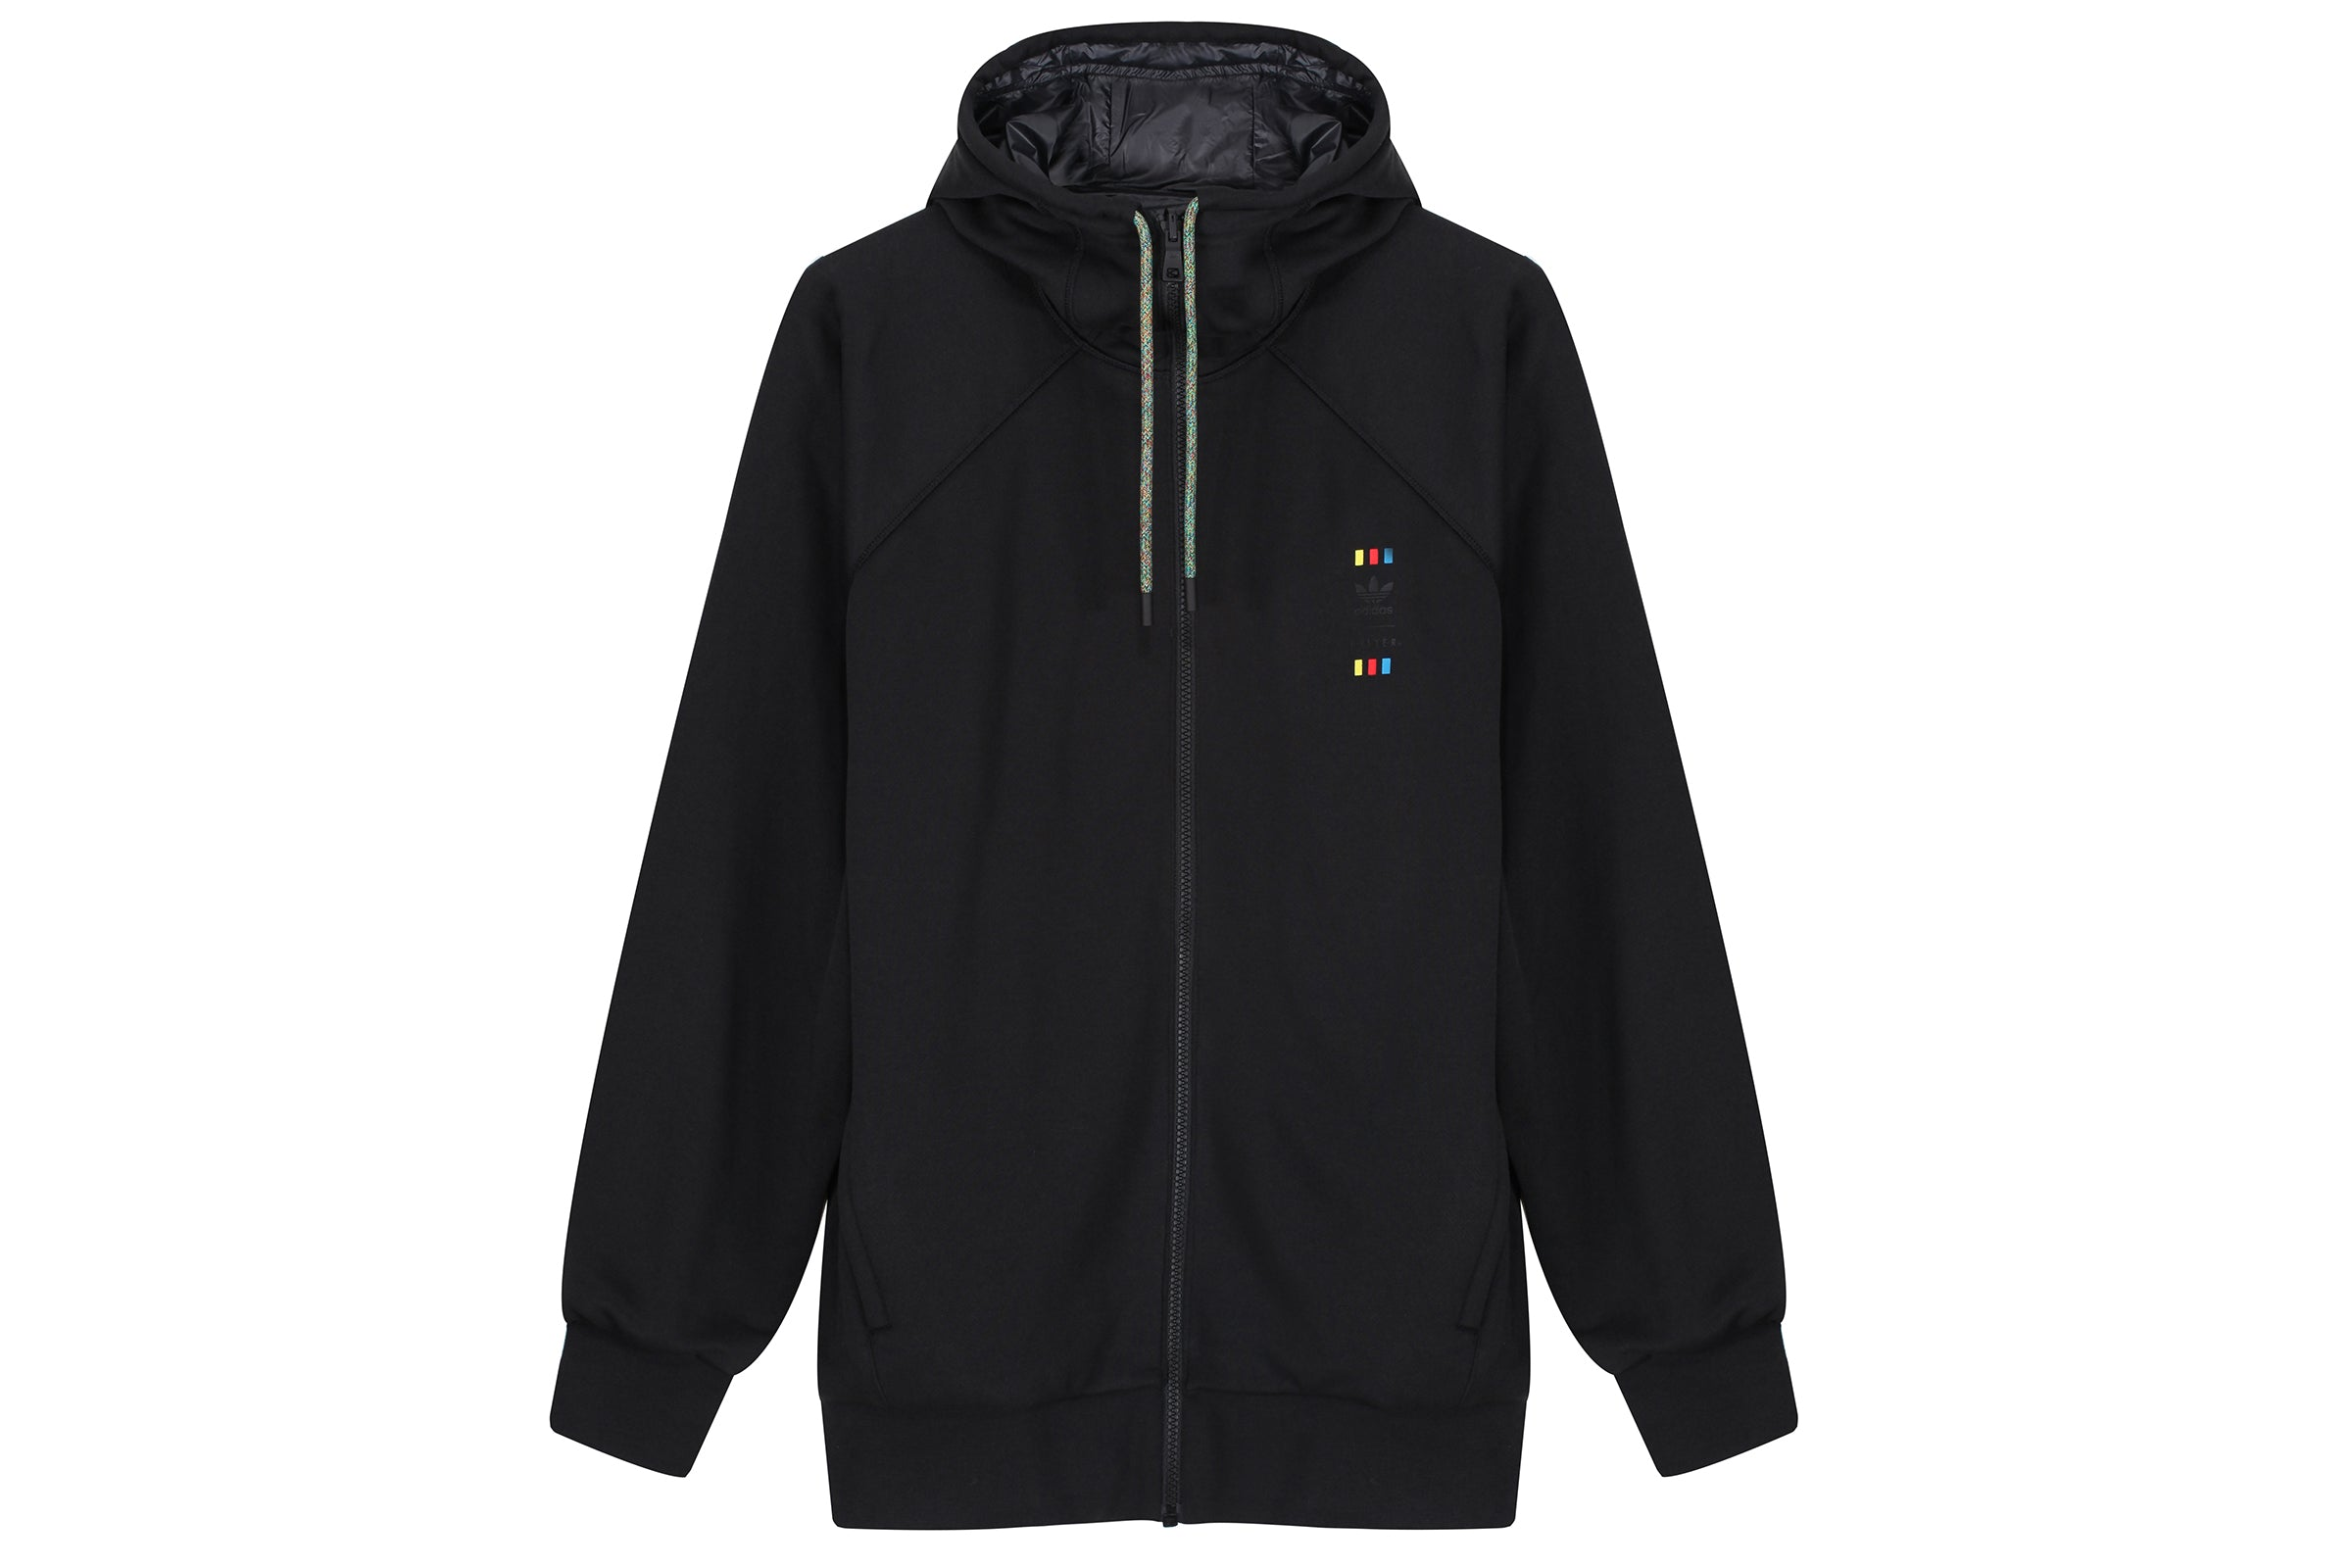 Adidas 72 Hour Hooded Sweatshirt x Oyster Holdings